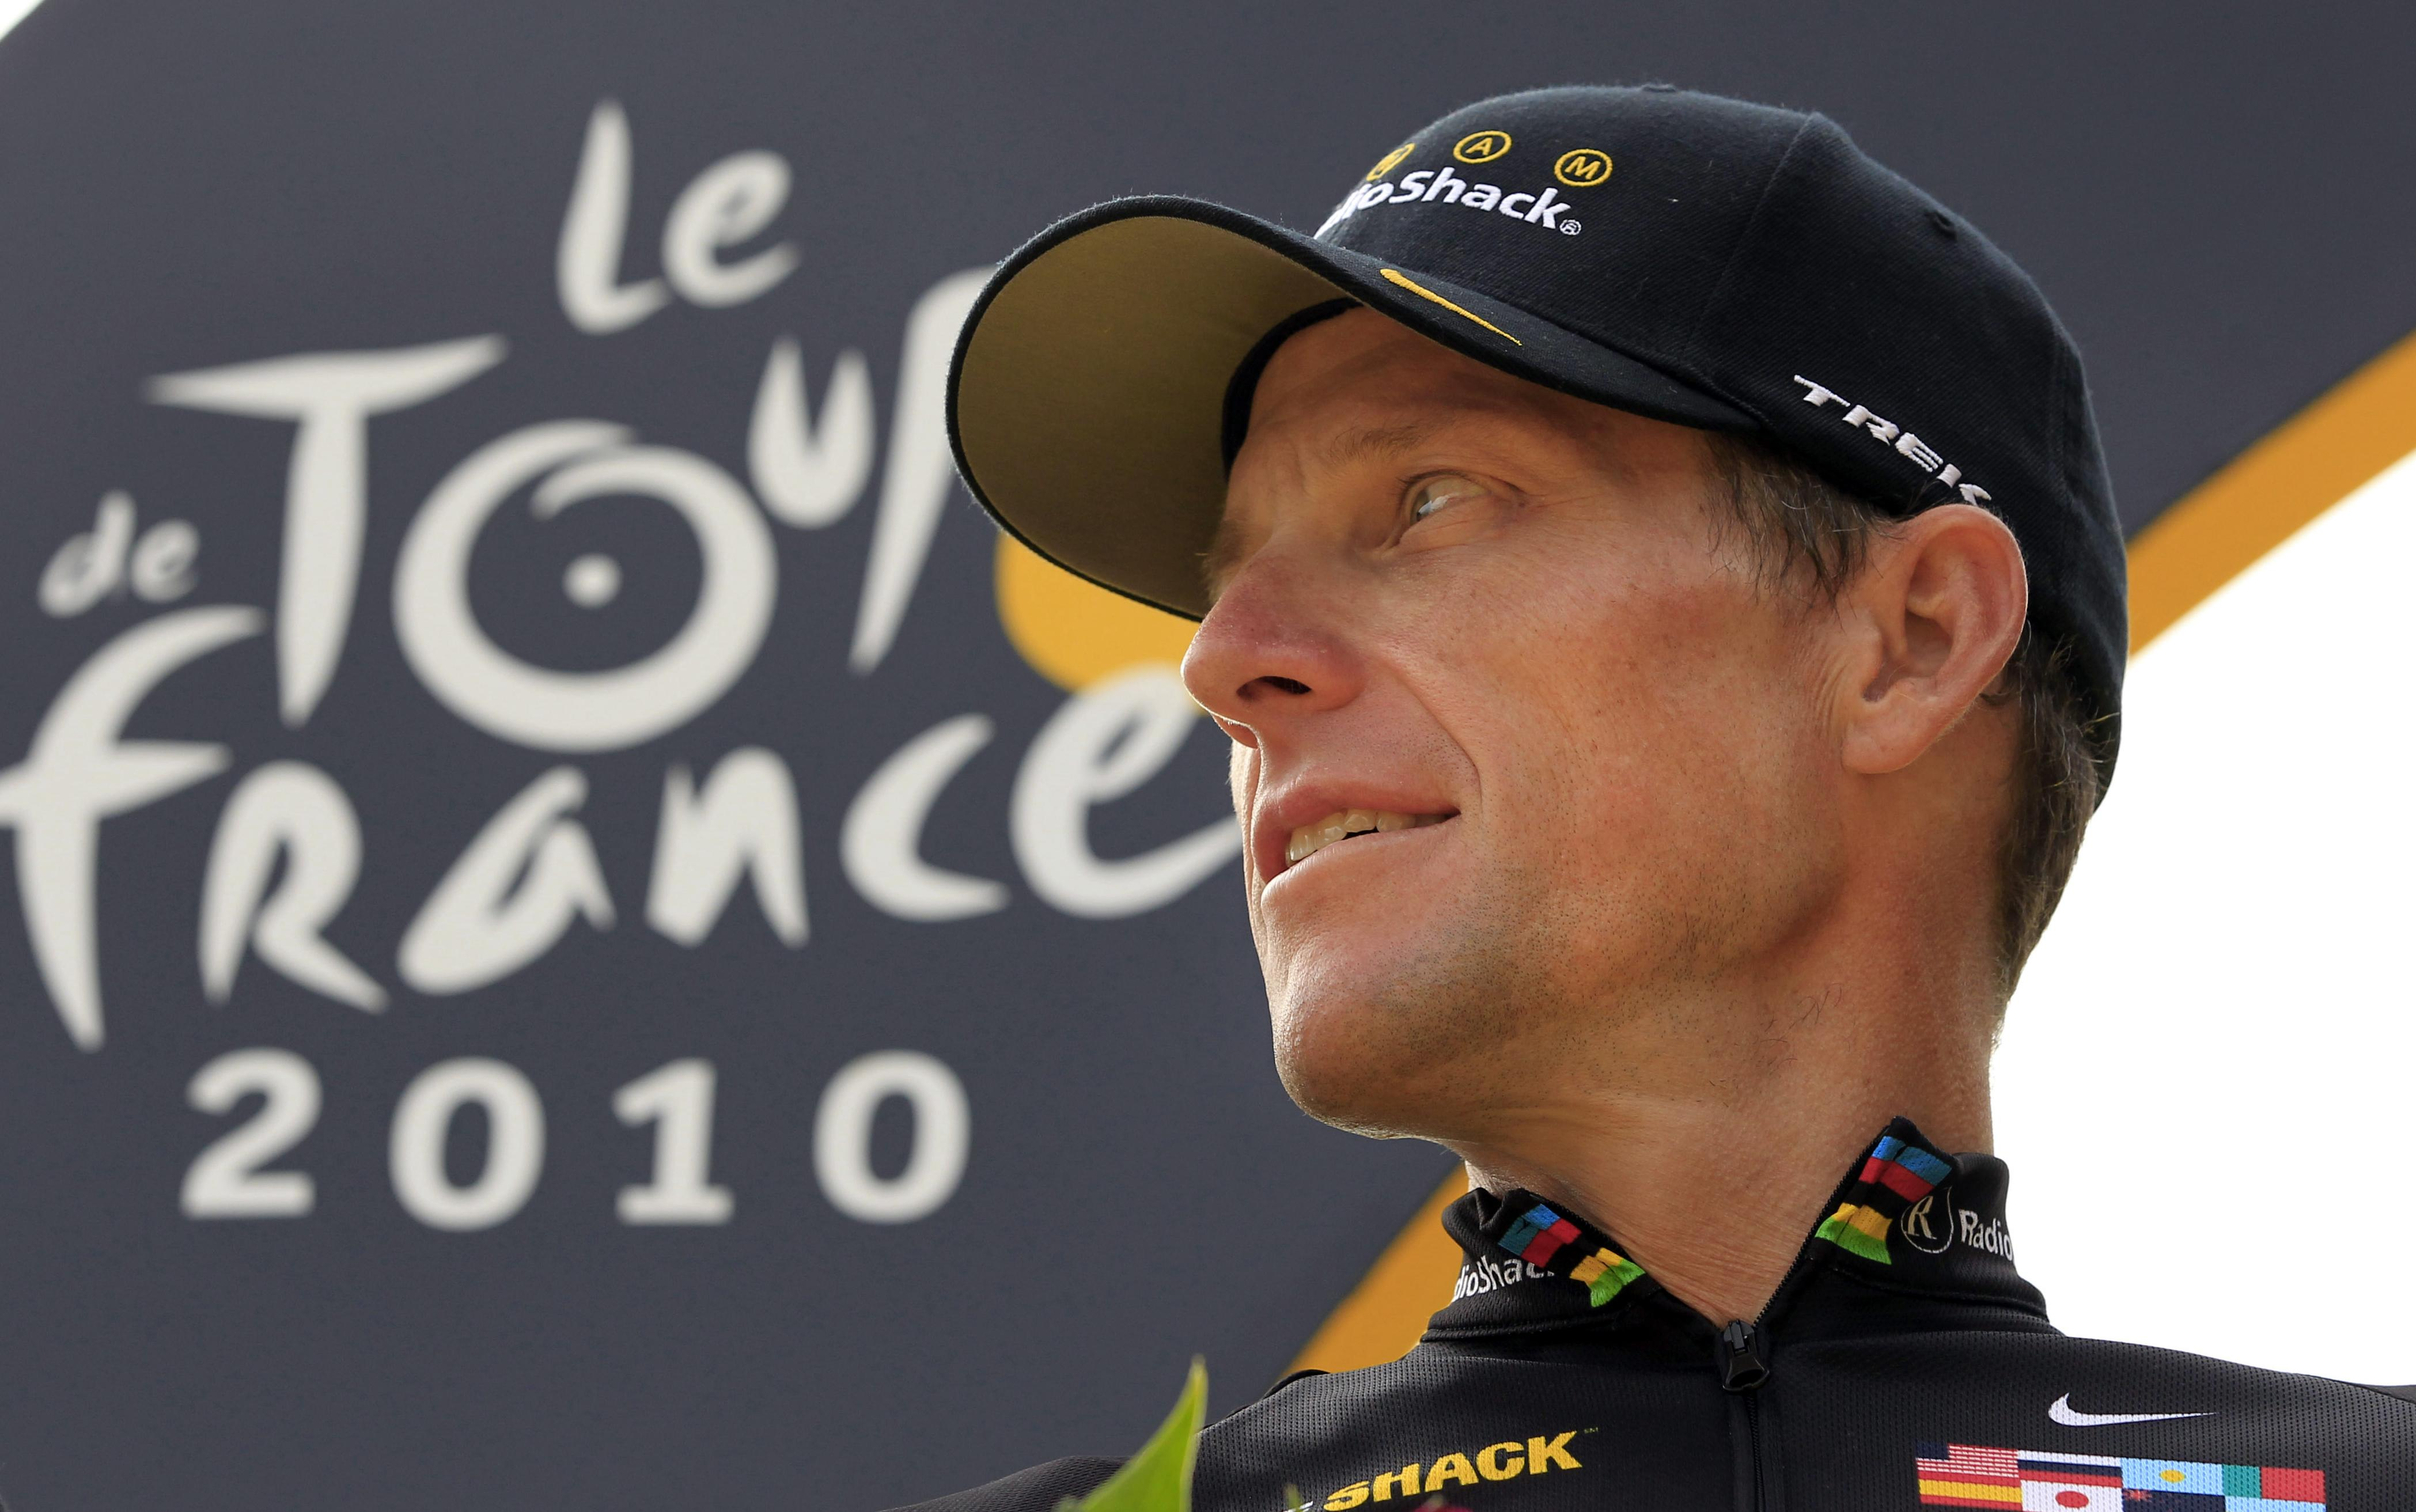 Lance Armstrong: 'I wouldn't change a thing' about doping scandal